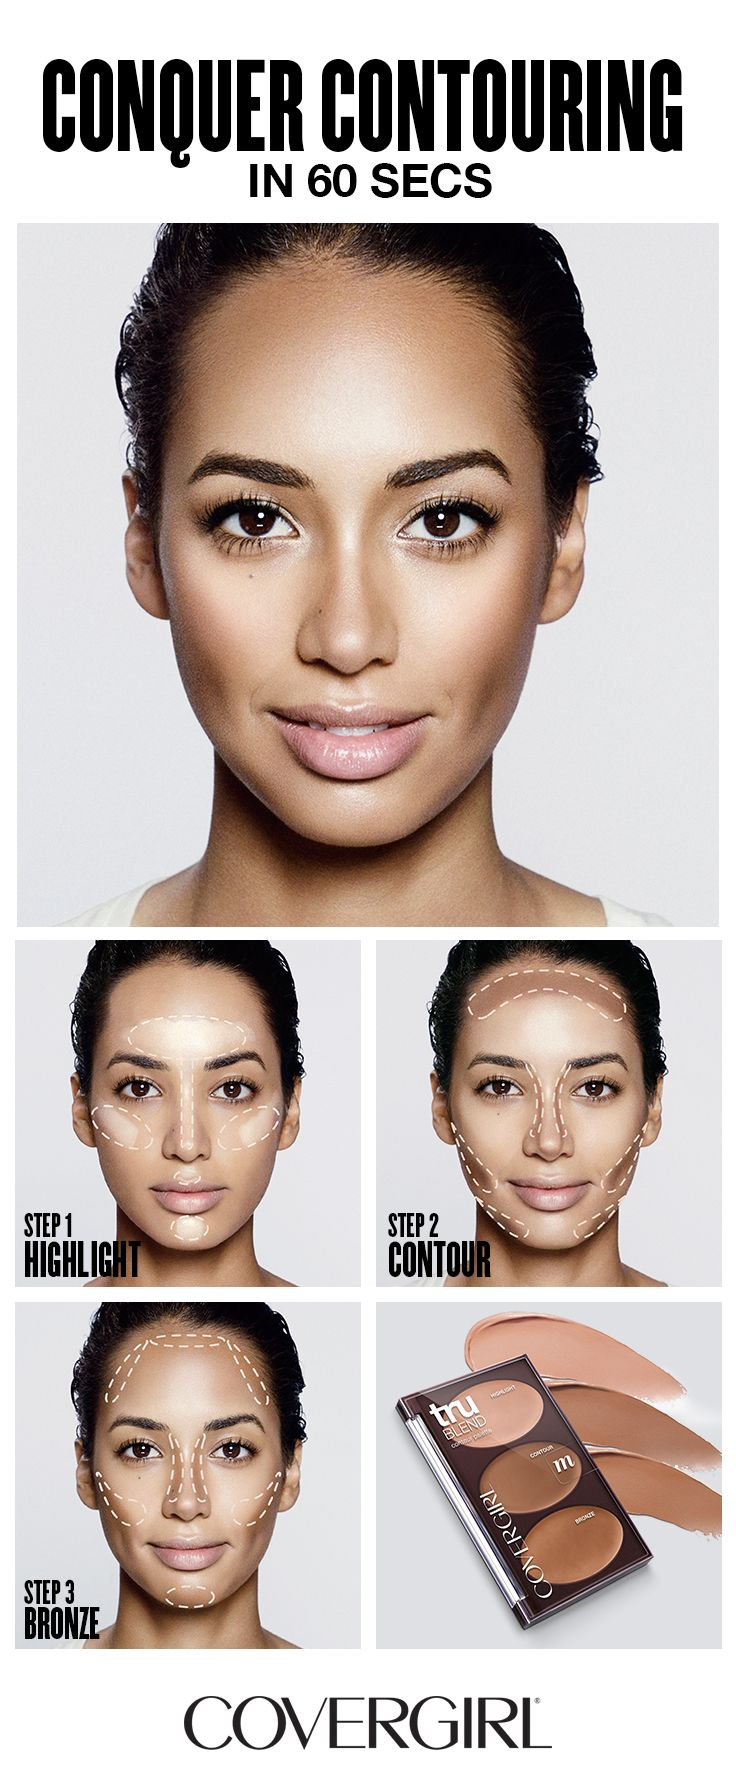 COVERGIRL shows you how to contour your face in 60 seconds! Follow ...